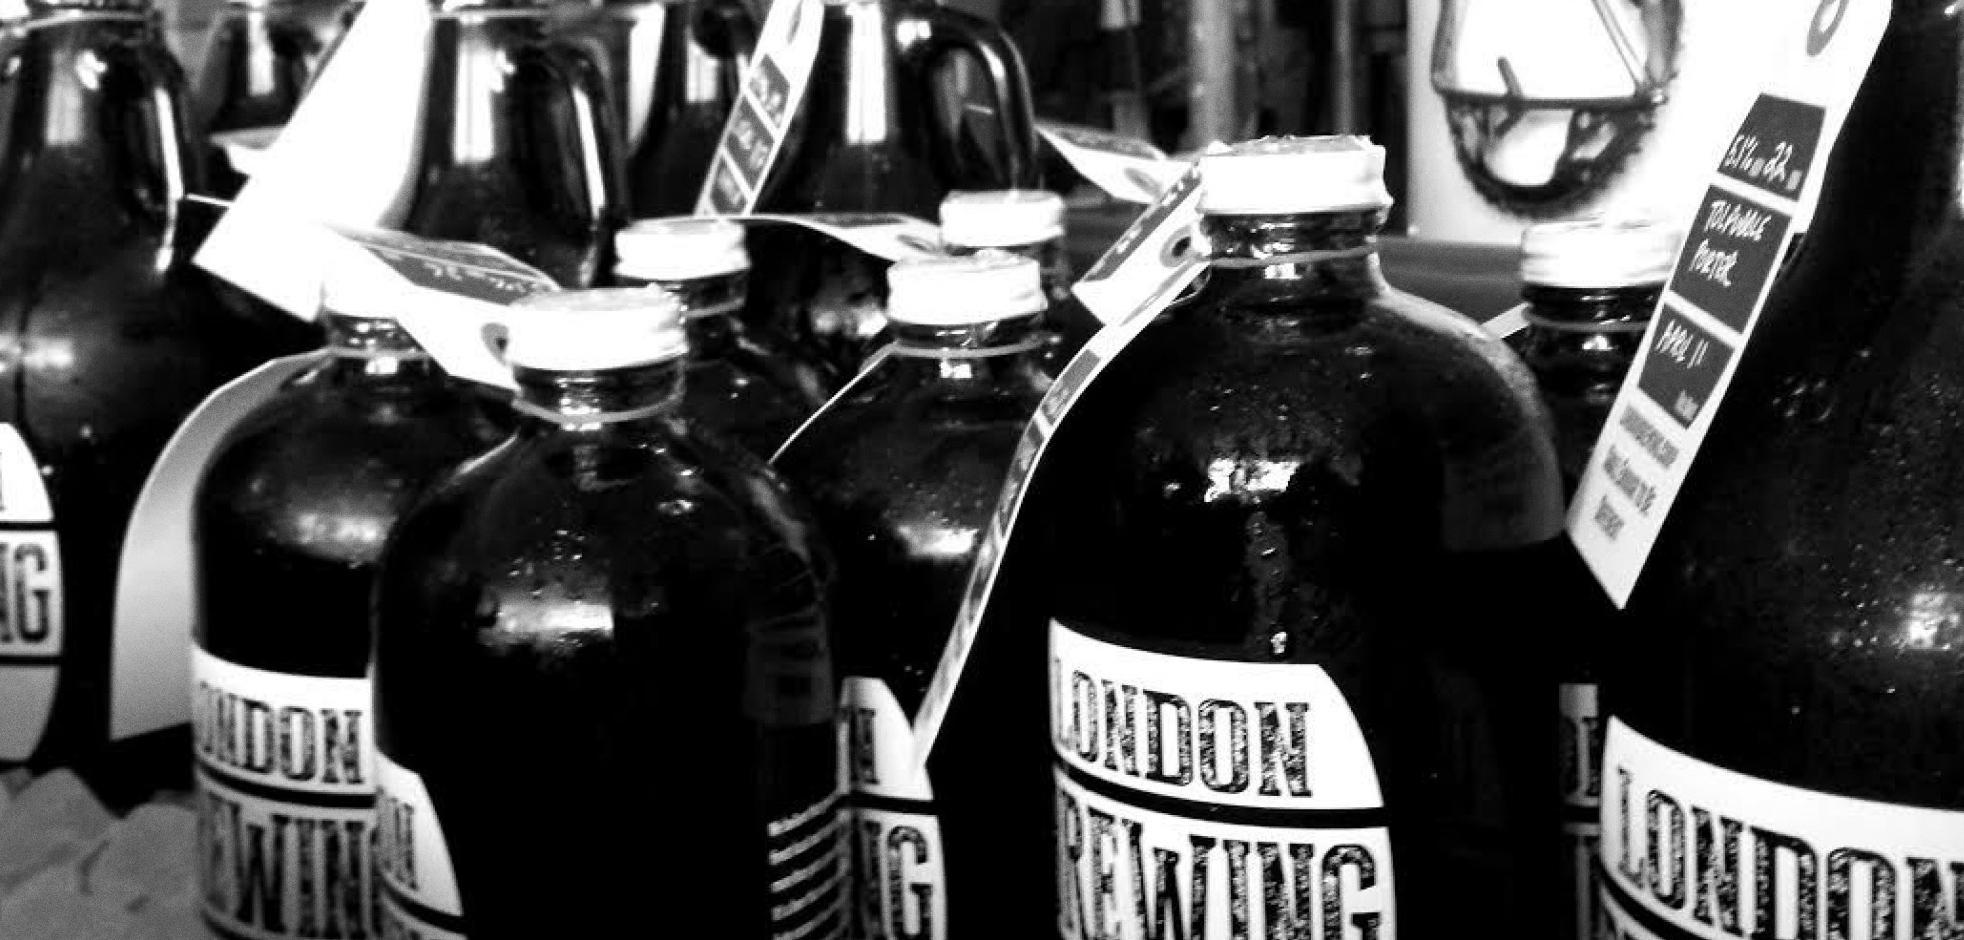 London Brewing